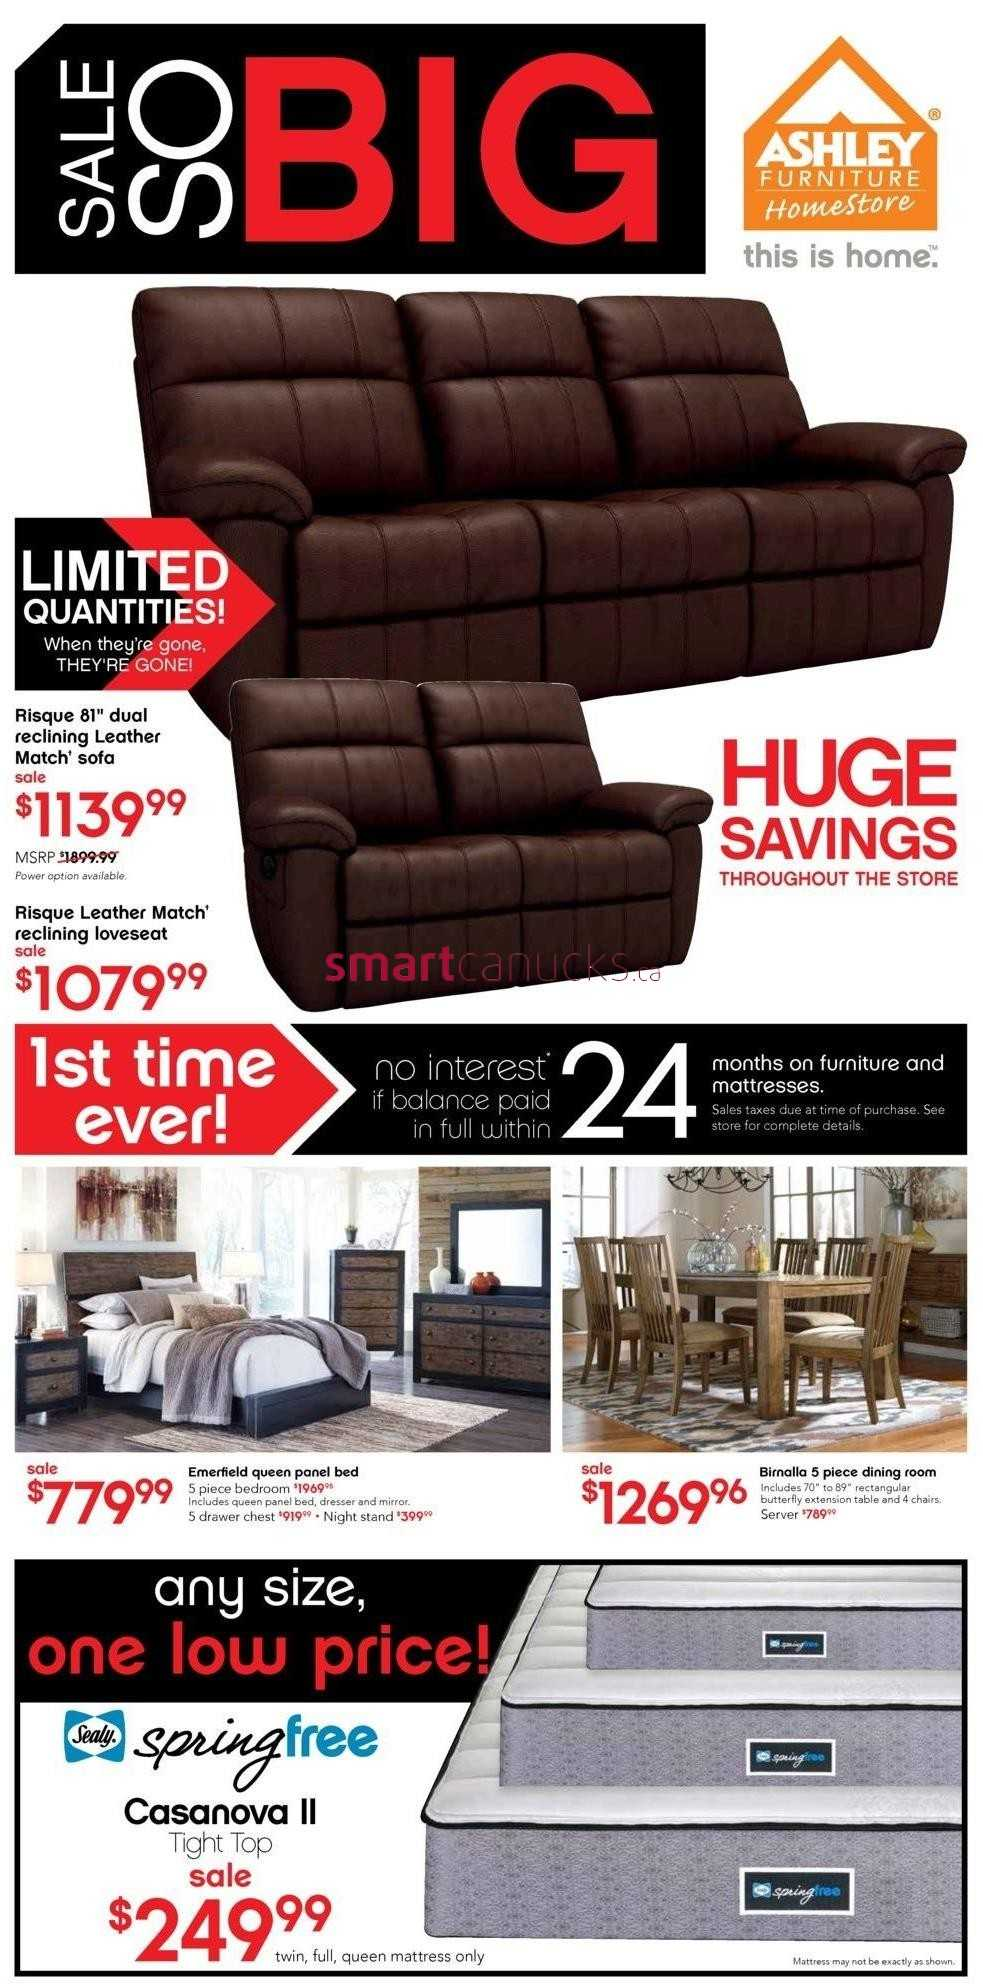 Ashley Furniture Home Store Lubbock